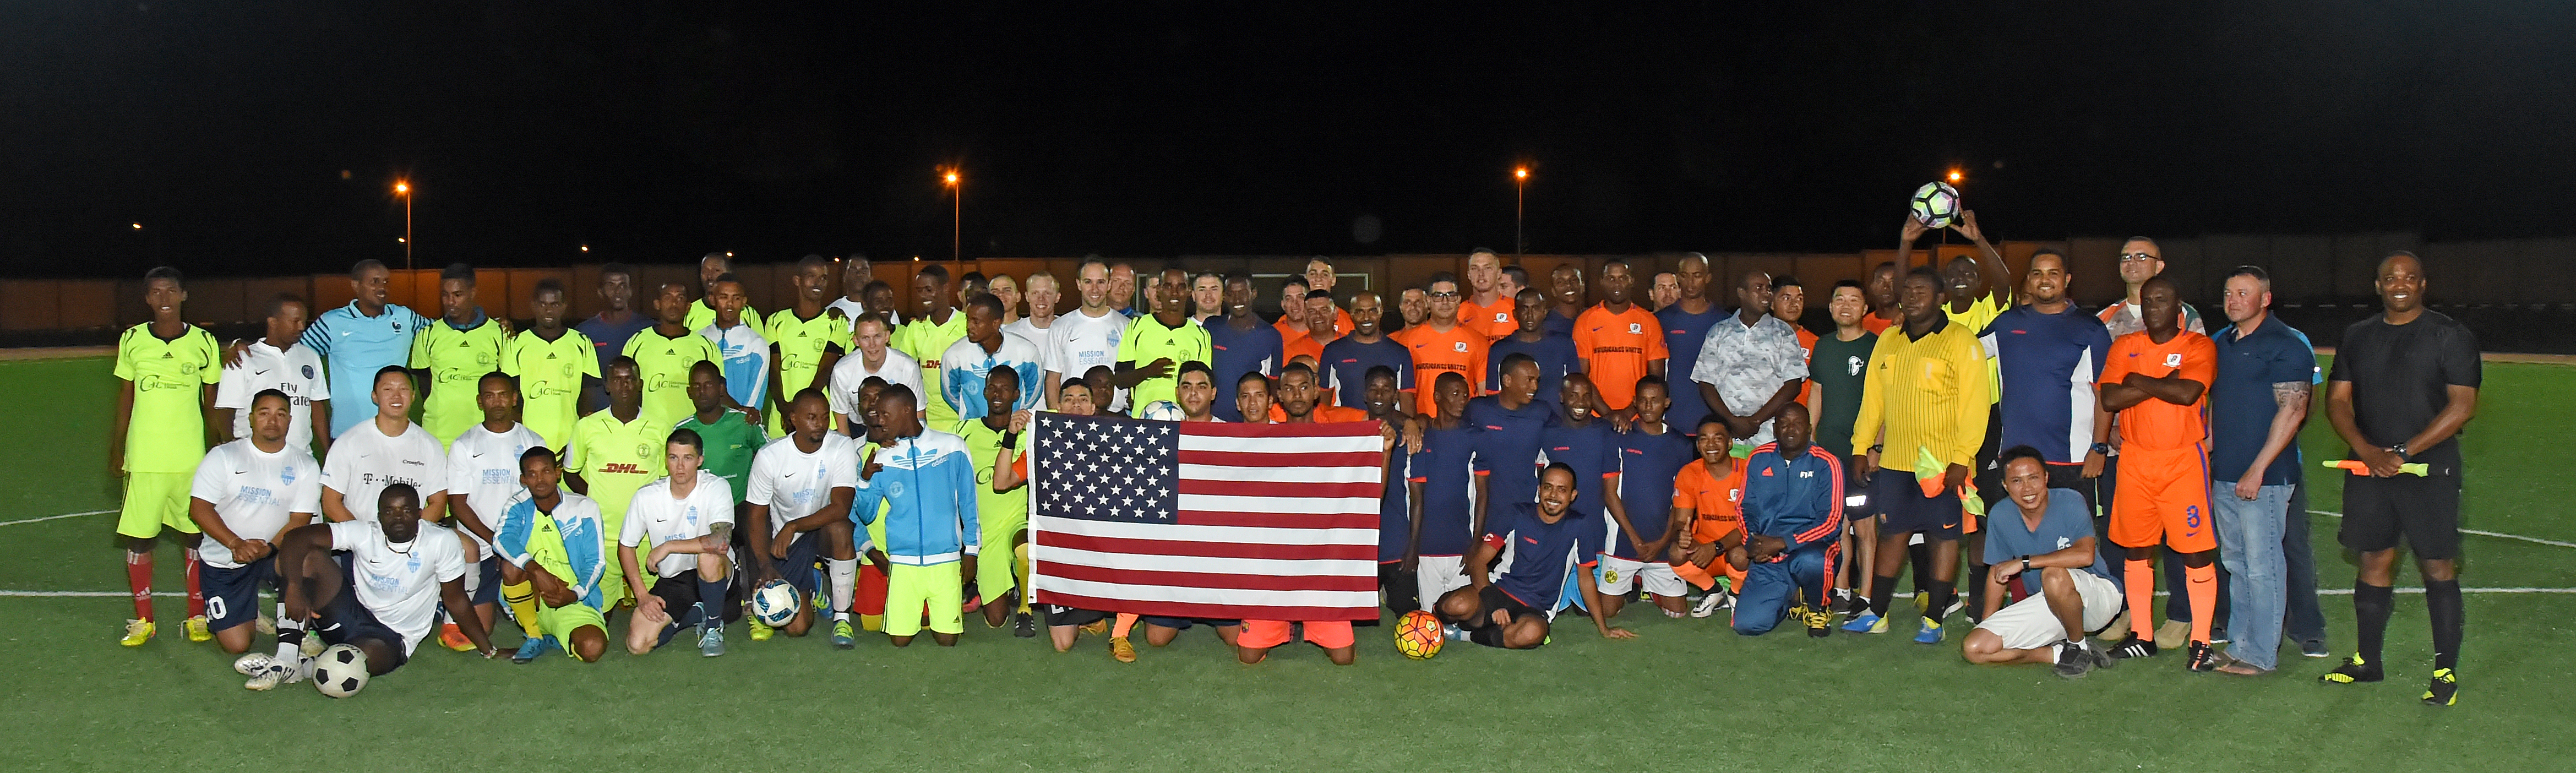 Teams comprised of U.S. military members stationed at Camp Lemonnier, and members of the Djibouti Armed Forces (FAD) Republican Guard gather for a group photo prior to the first in a series of friendly soccer matches at the Balbala Sports Complex in downtown Djibouti Jan. 1, 2017. Through the organization of regular sporting events, the U.S. service members strive to strengthen the relationship with their FAD counterparts as well as with partner nation militaries operating in the Horn of Africa.  (U.S. Air National Guard photo by Master Sgt. Paul Gorman)